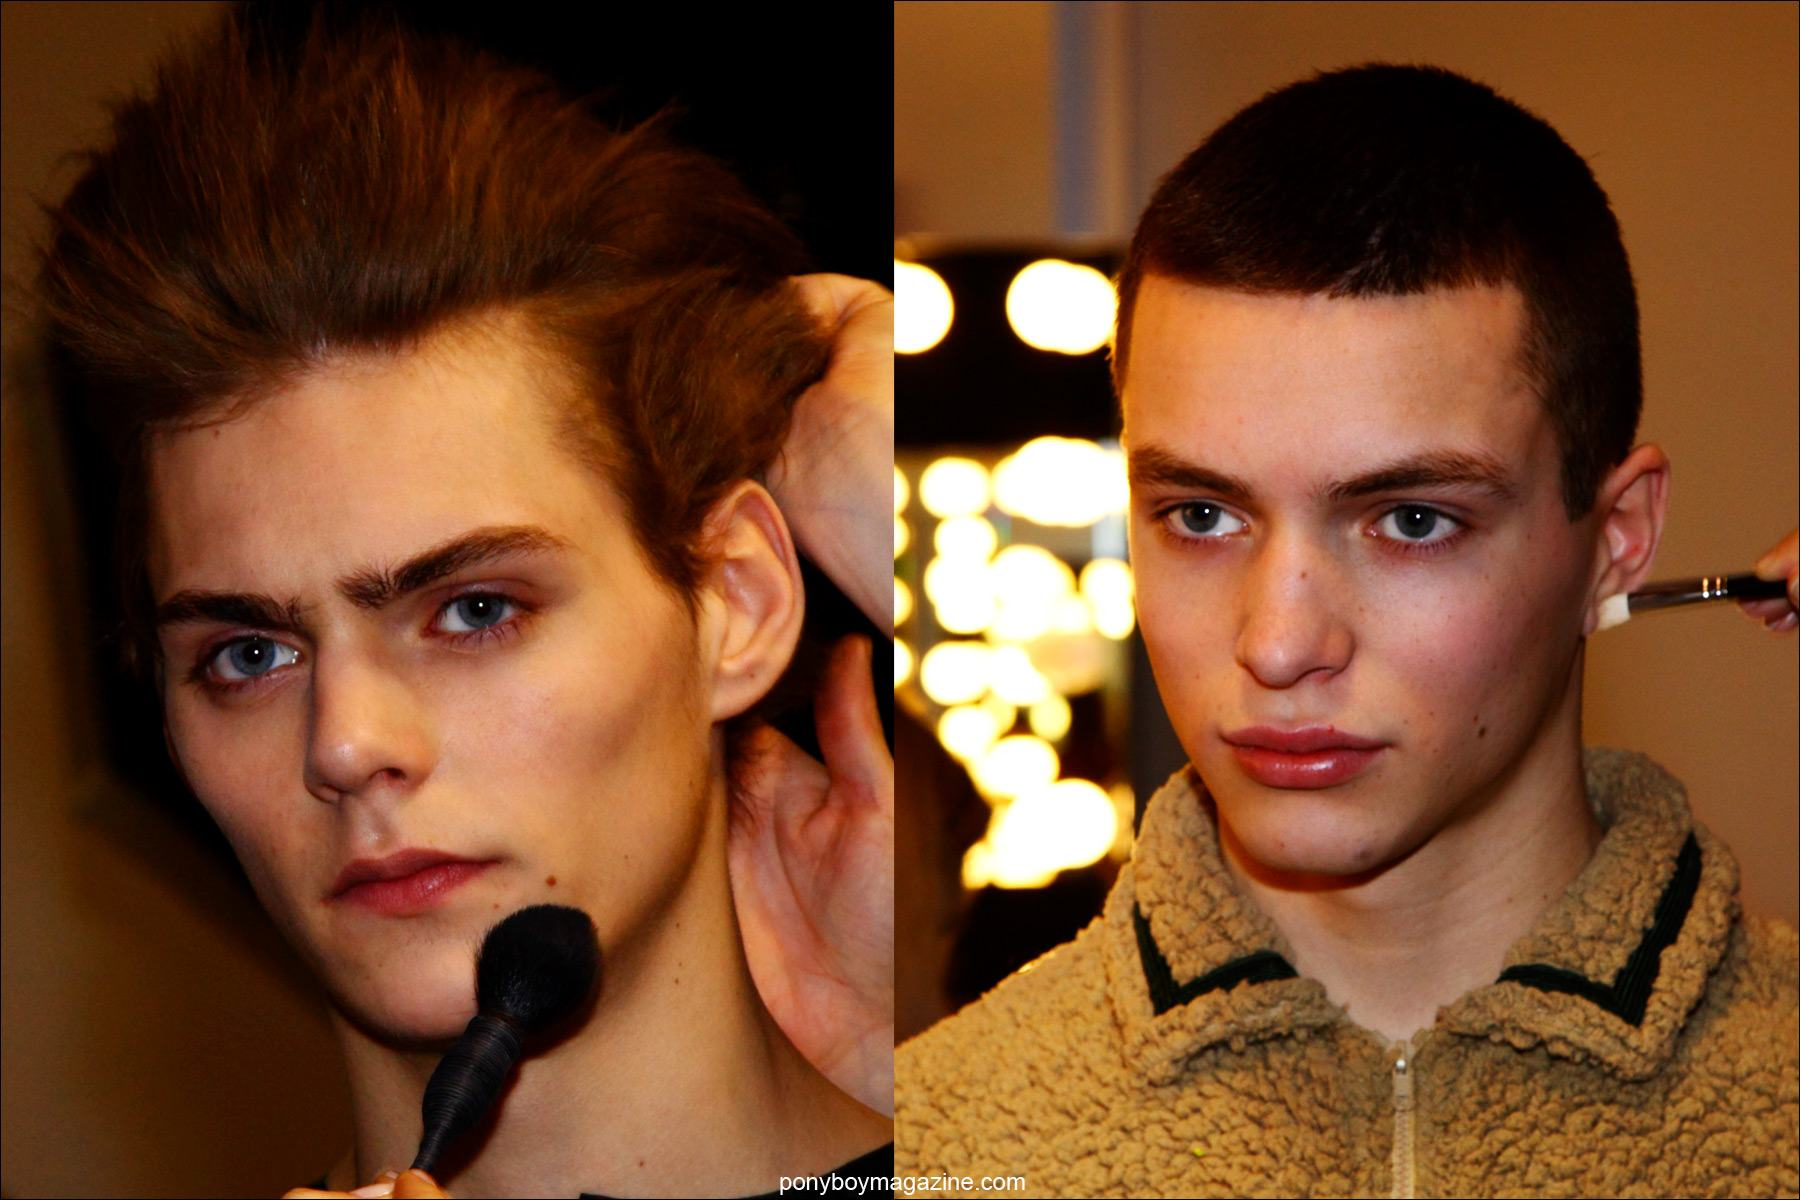 Male model Max Van Snippenberg, photographed by Alexander Thompson for Ponyboy magazine, backstage in makeup at the Martin Keehn F/W15 menswear collection at Pier 59 Studios New York City.